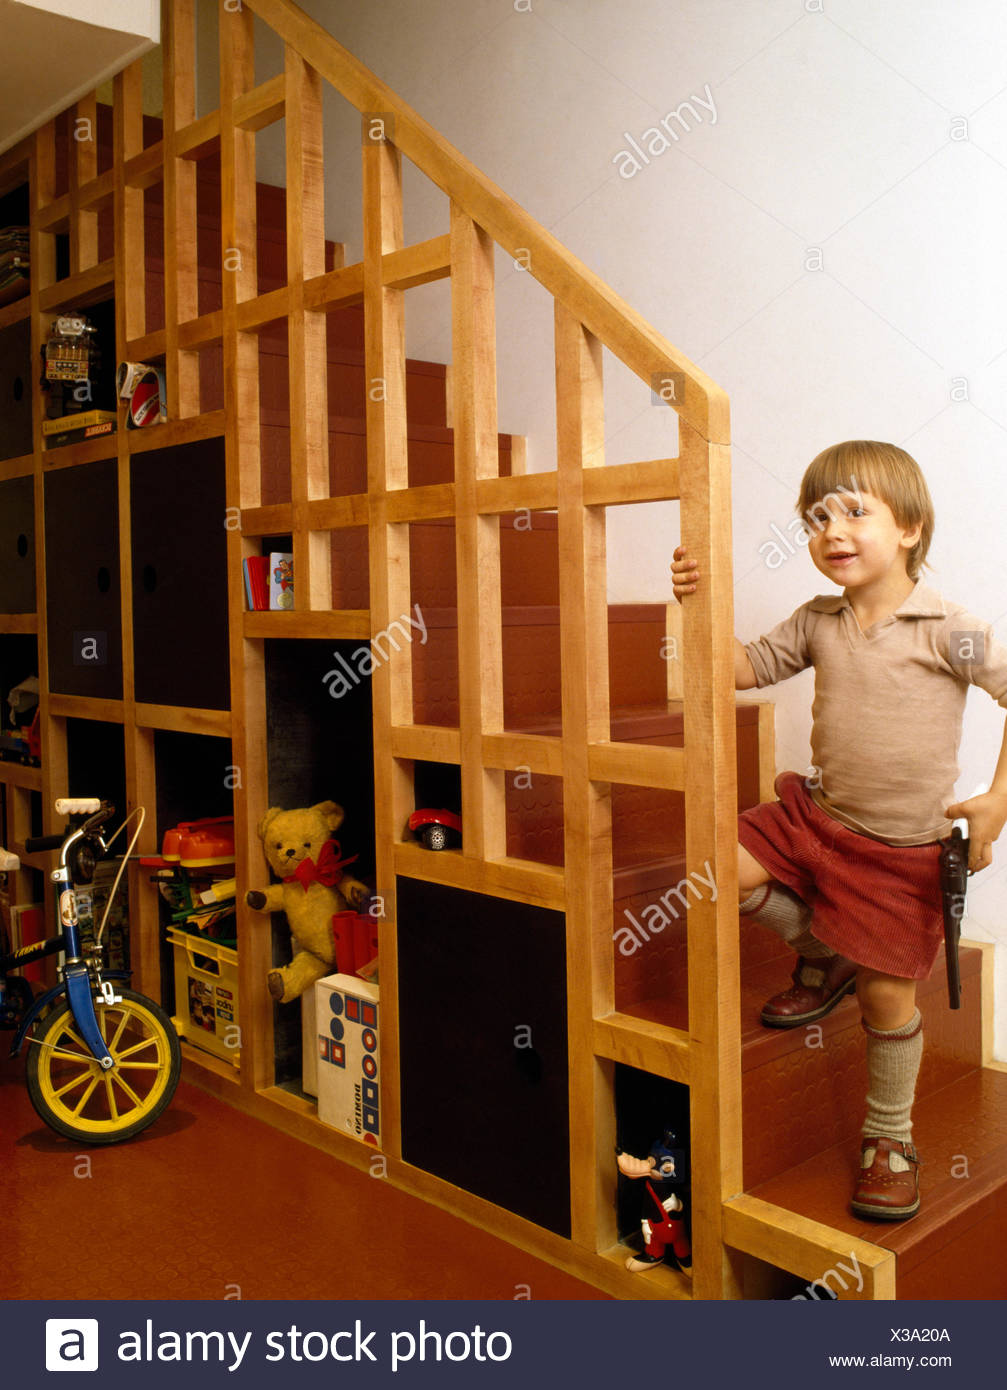 Small Boy Standing On Staircase With Under Stair Storage In A Seventies Hall Stock Photo Alamy